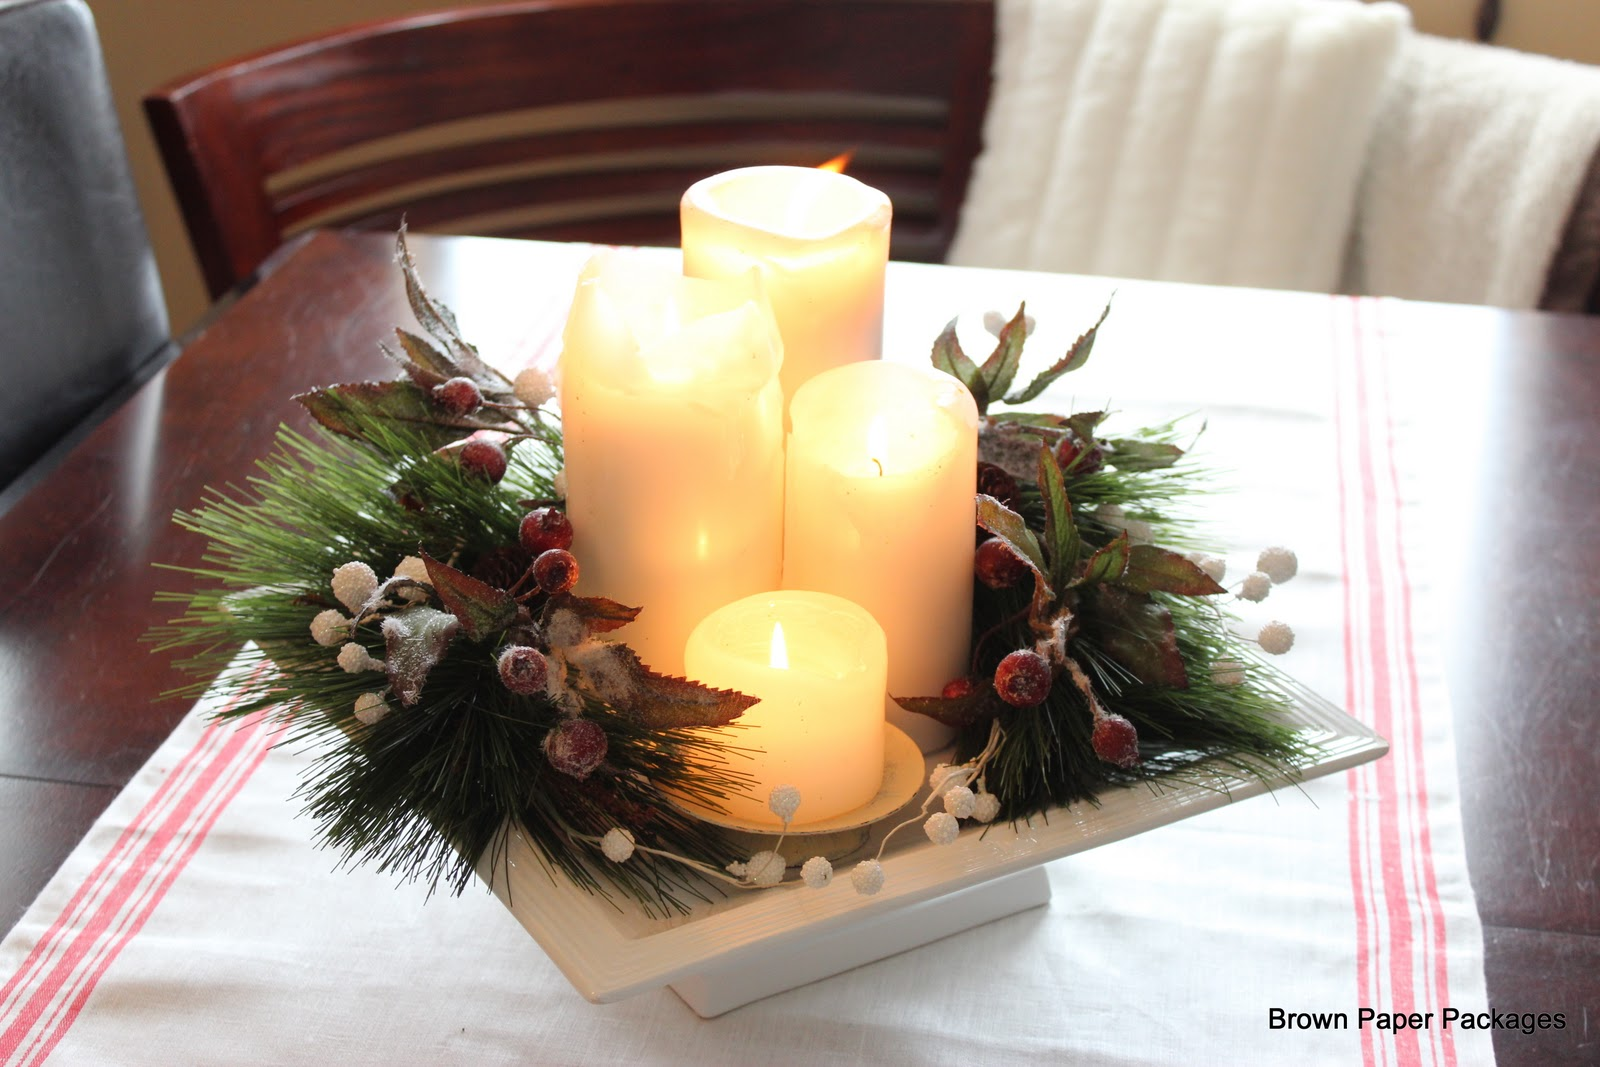 My Super Simple Christmas Table & Brown Paper Packages: My Super Simple Christmas Table